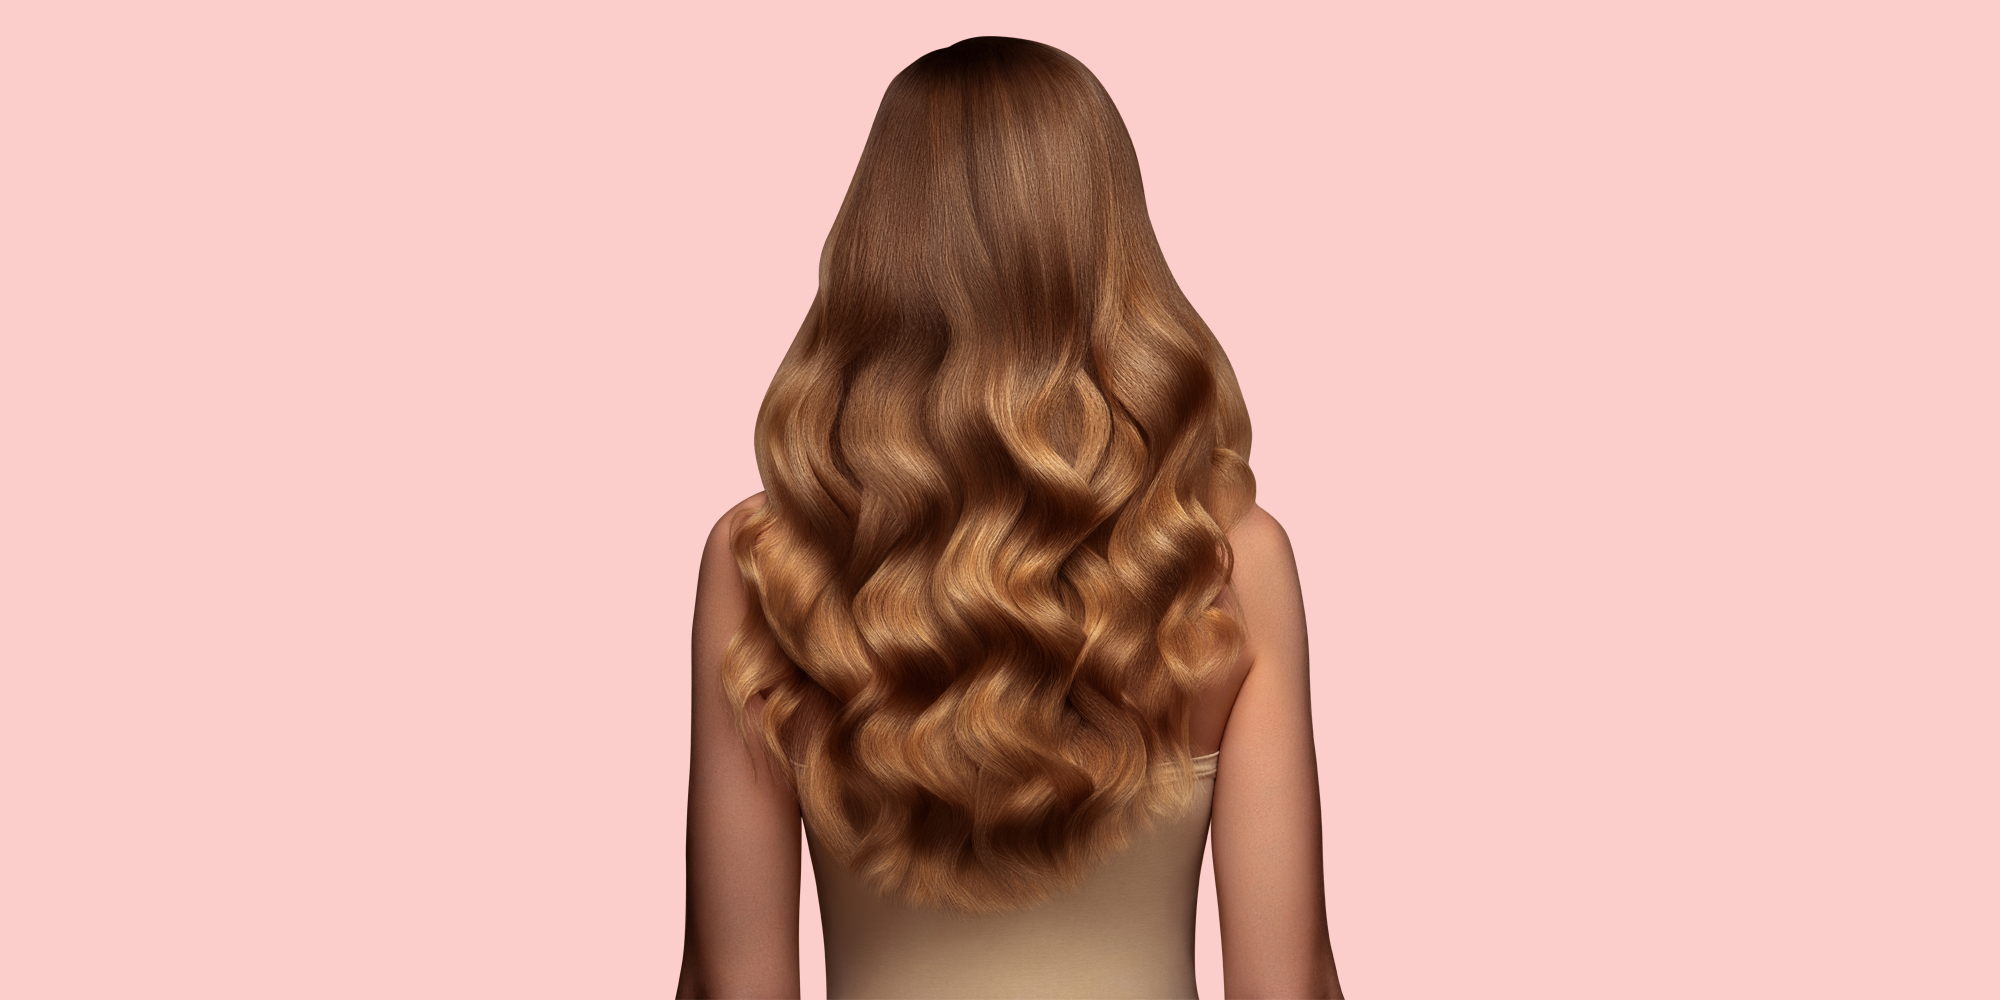 8 Easy Beach Waves Tutorials How To Get Beachy Waves In Your Hair